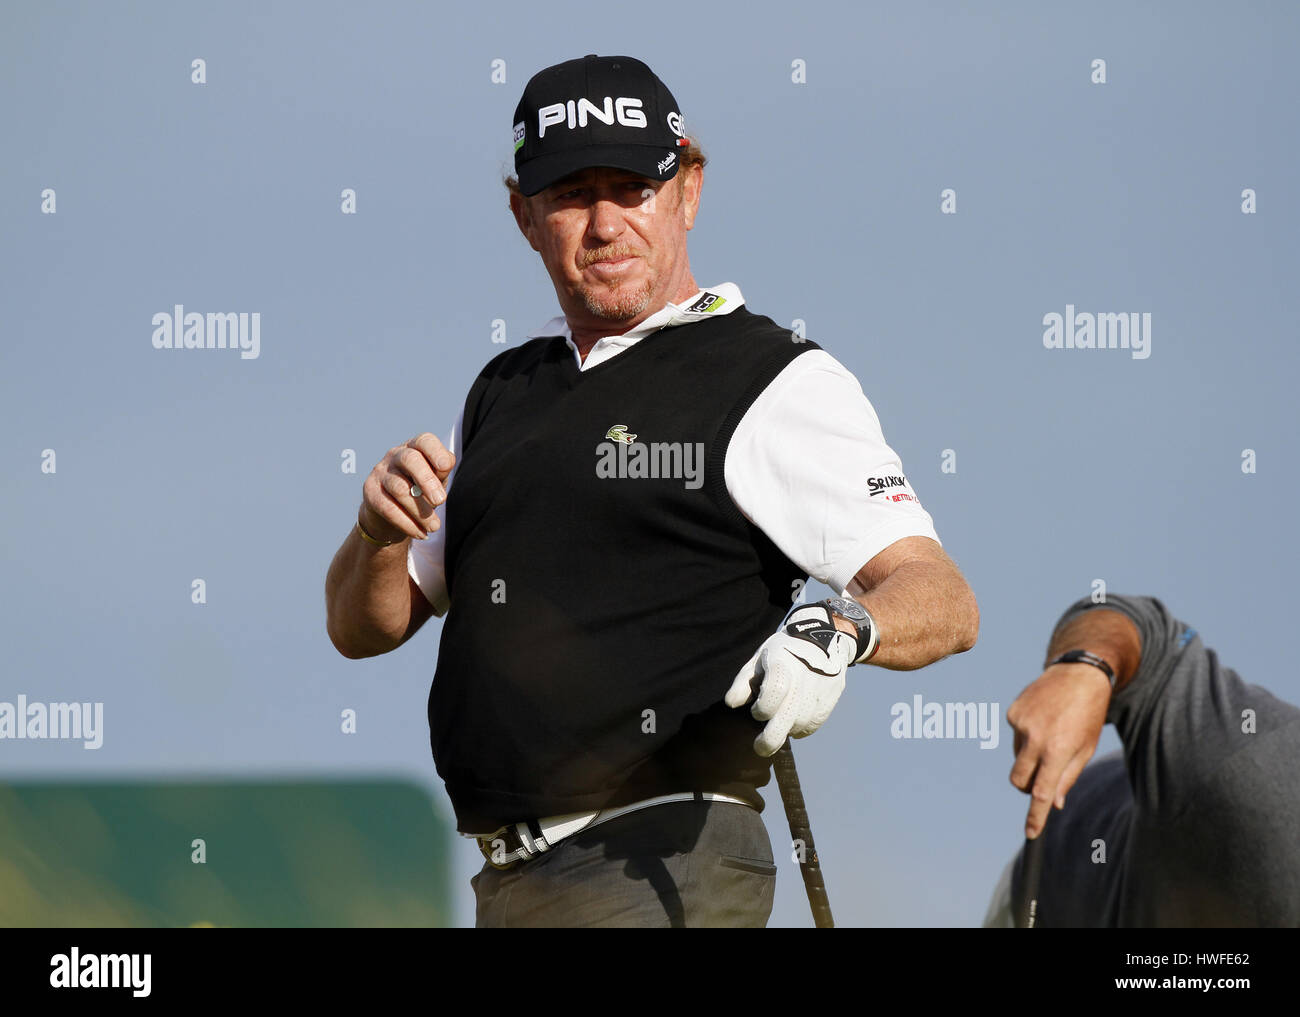 MIGUEL ANGEL JIMENEZ SPAIN SPAIN ROYAL ST.GEORGE'S SANDWICH KENT ENGLAND 16 July 2011 - Stock Image